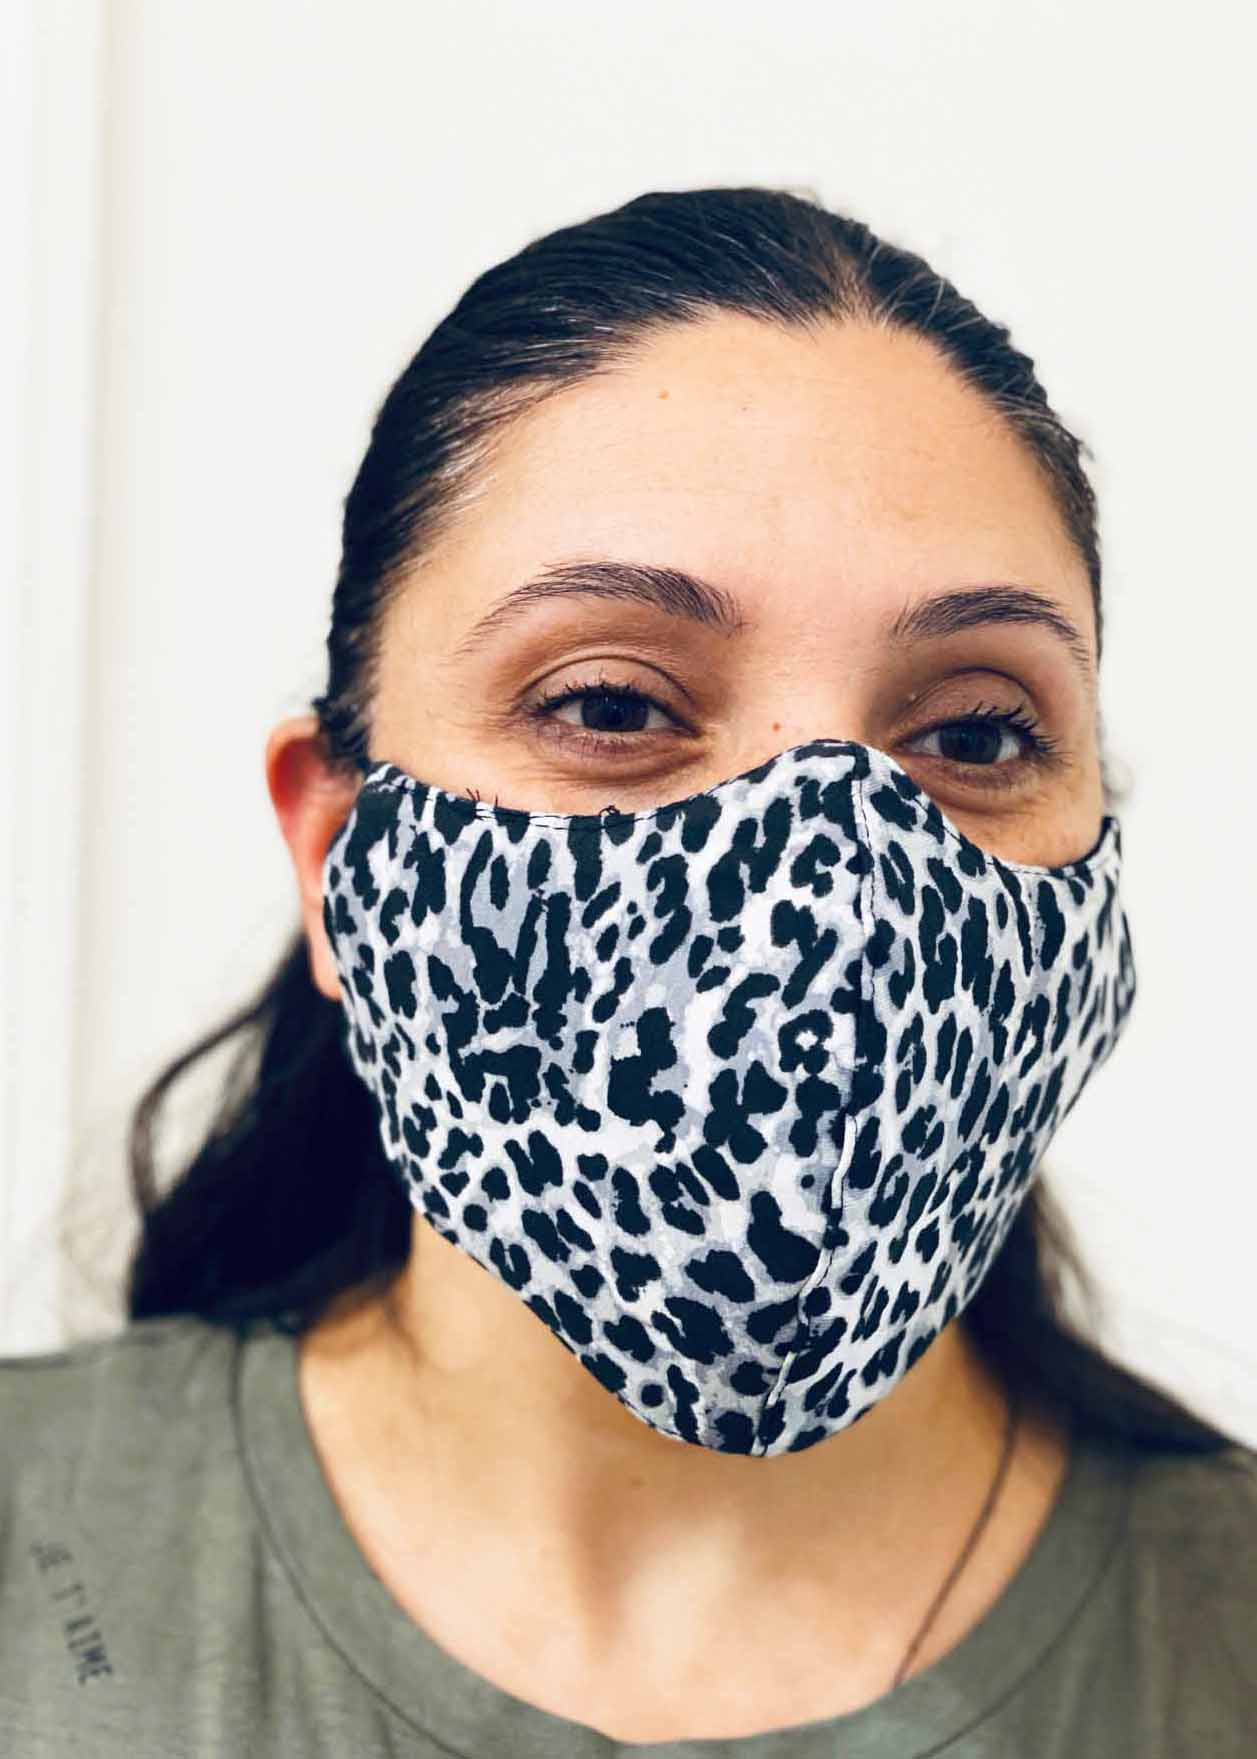 Ladies DHHS Leopard (Grey/White) Face Mask by Laundry Box Melbourne